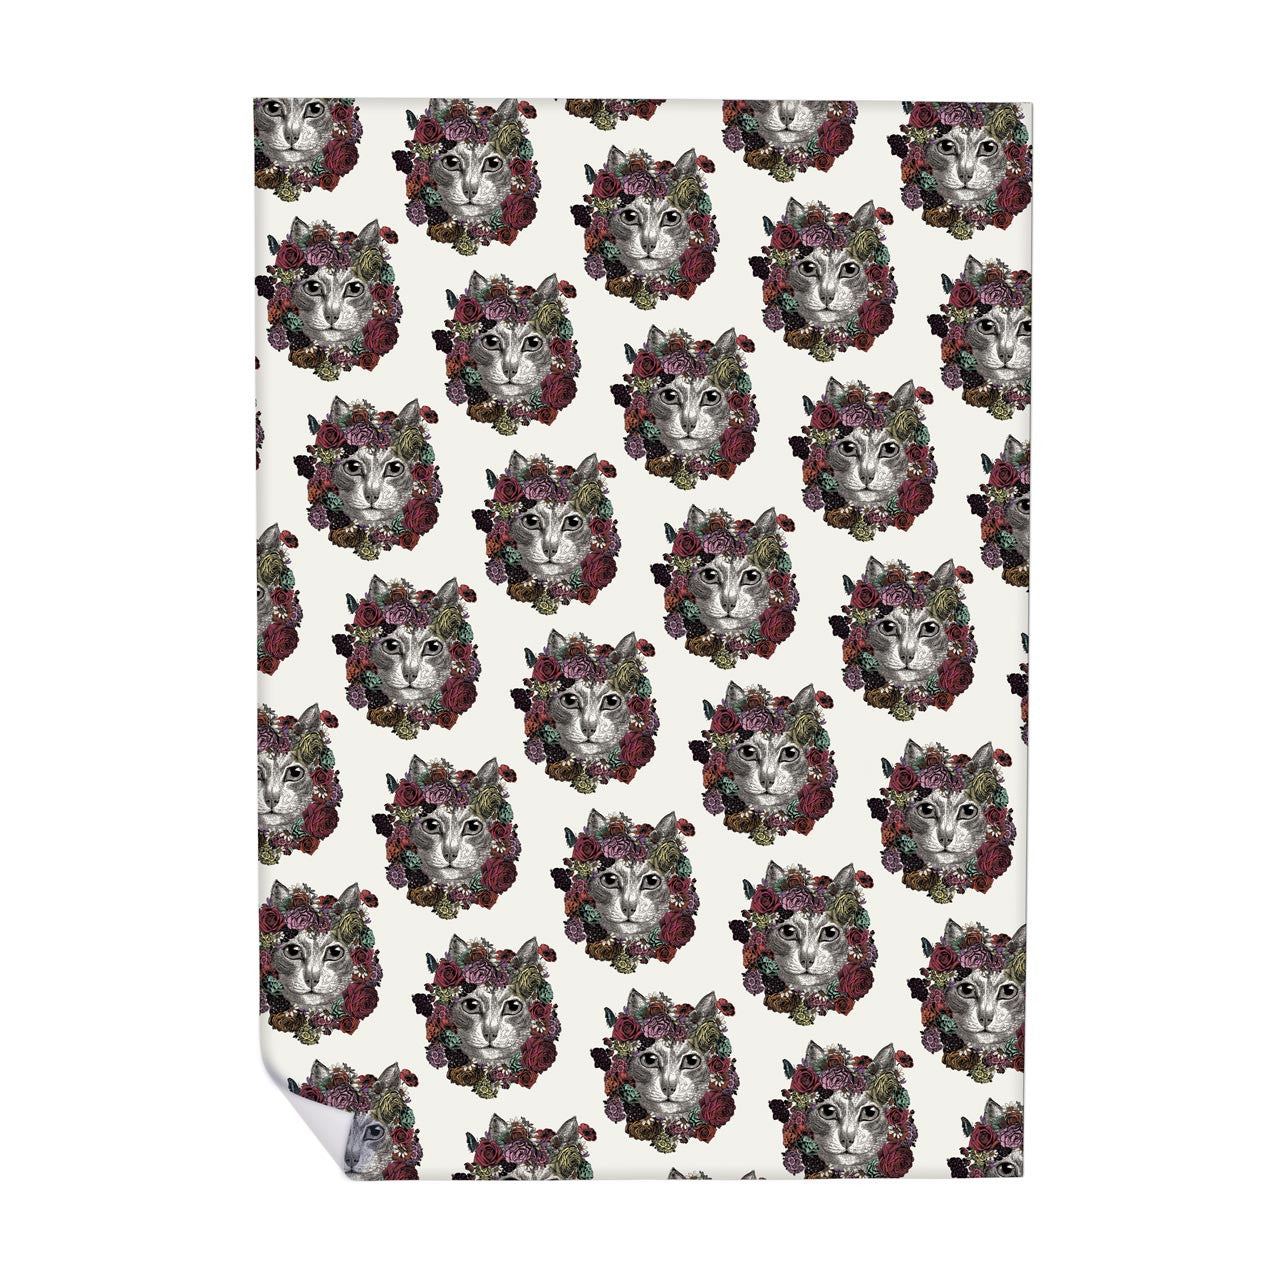 Flower Cat Pattern Wrapping Paper (ROLL OF 25)